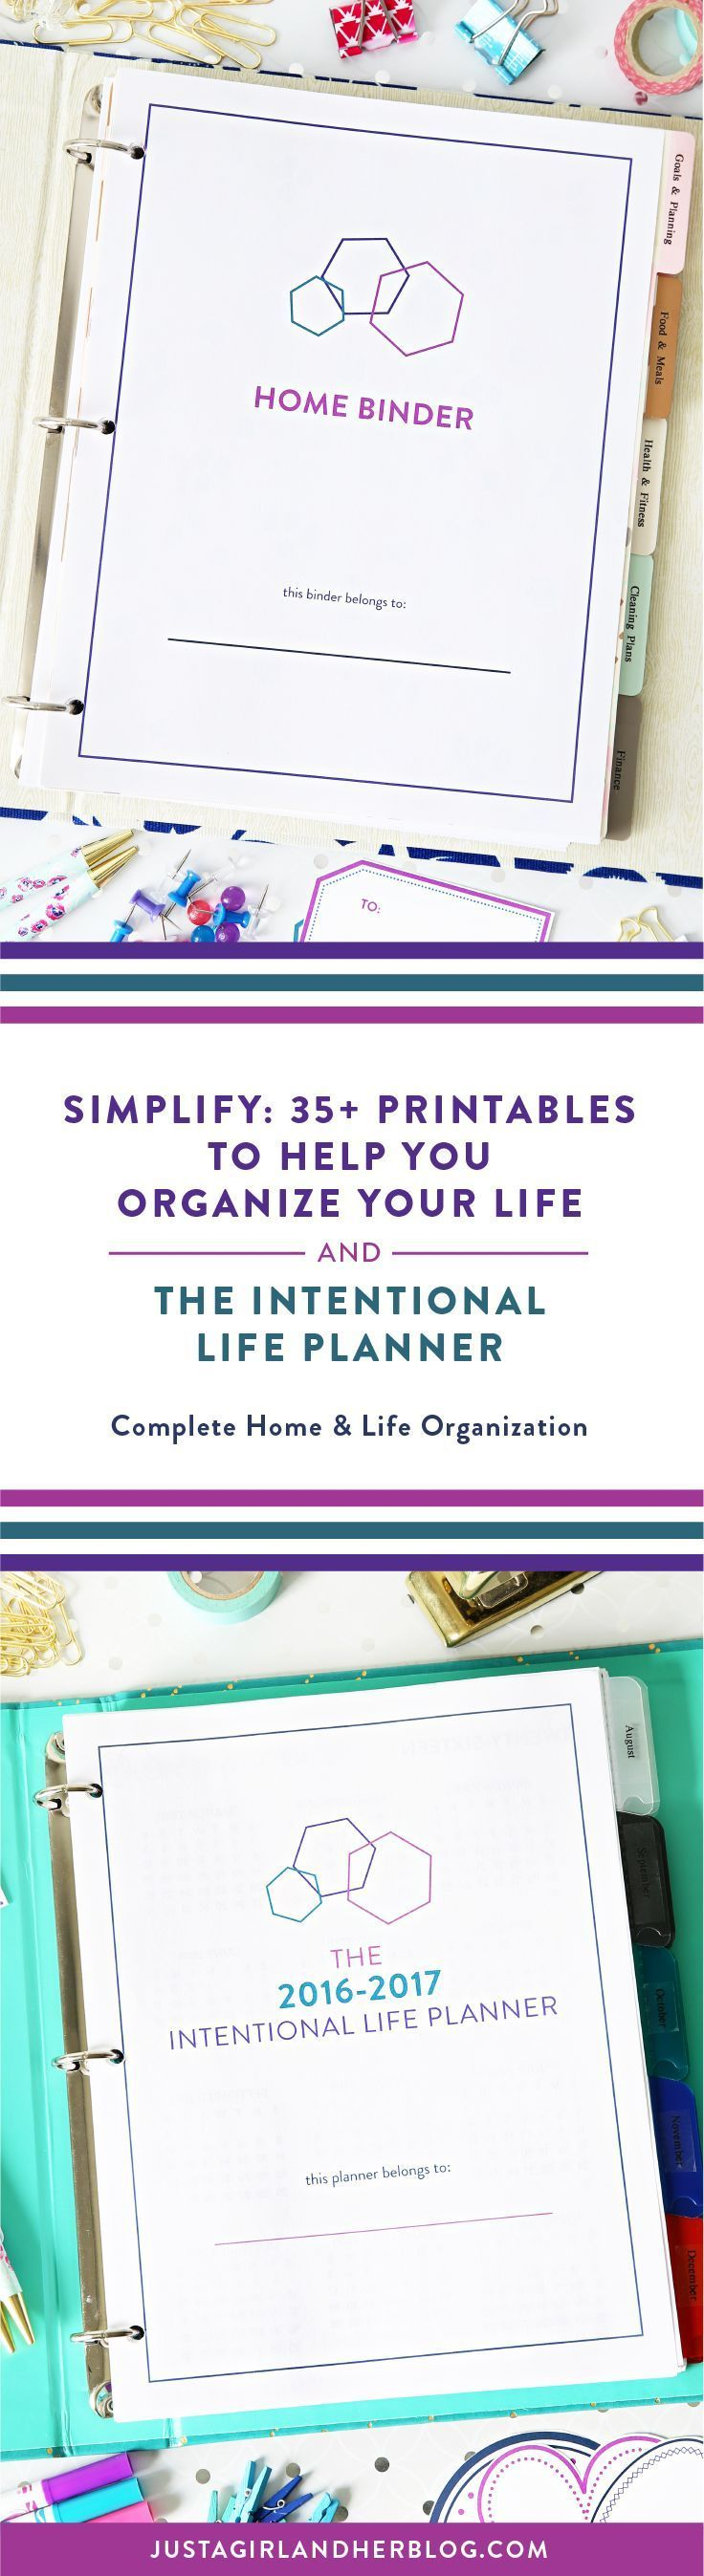 Getting organized and finding time to accomplish your biggest goals is challenging. That's why I created Simplify (my printable home binder) and The Intentional Life Planner as a complete home and life organization system. My goal was to create an easy-to-use process for maximizing my time, organizing my home, life, and business, as well as staying focused on my most important goals. It works! This is the same system I personally use to run a successful business as well as manage my busy fam